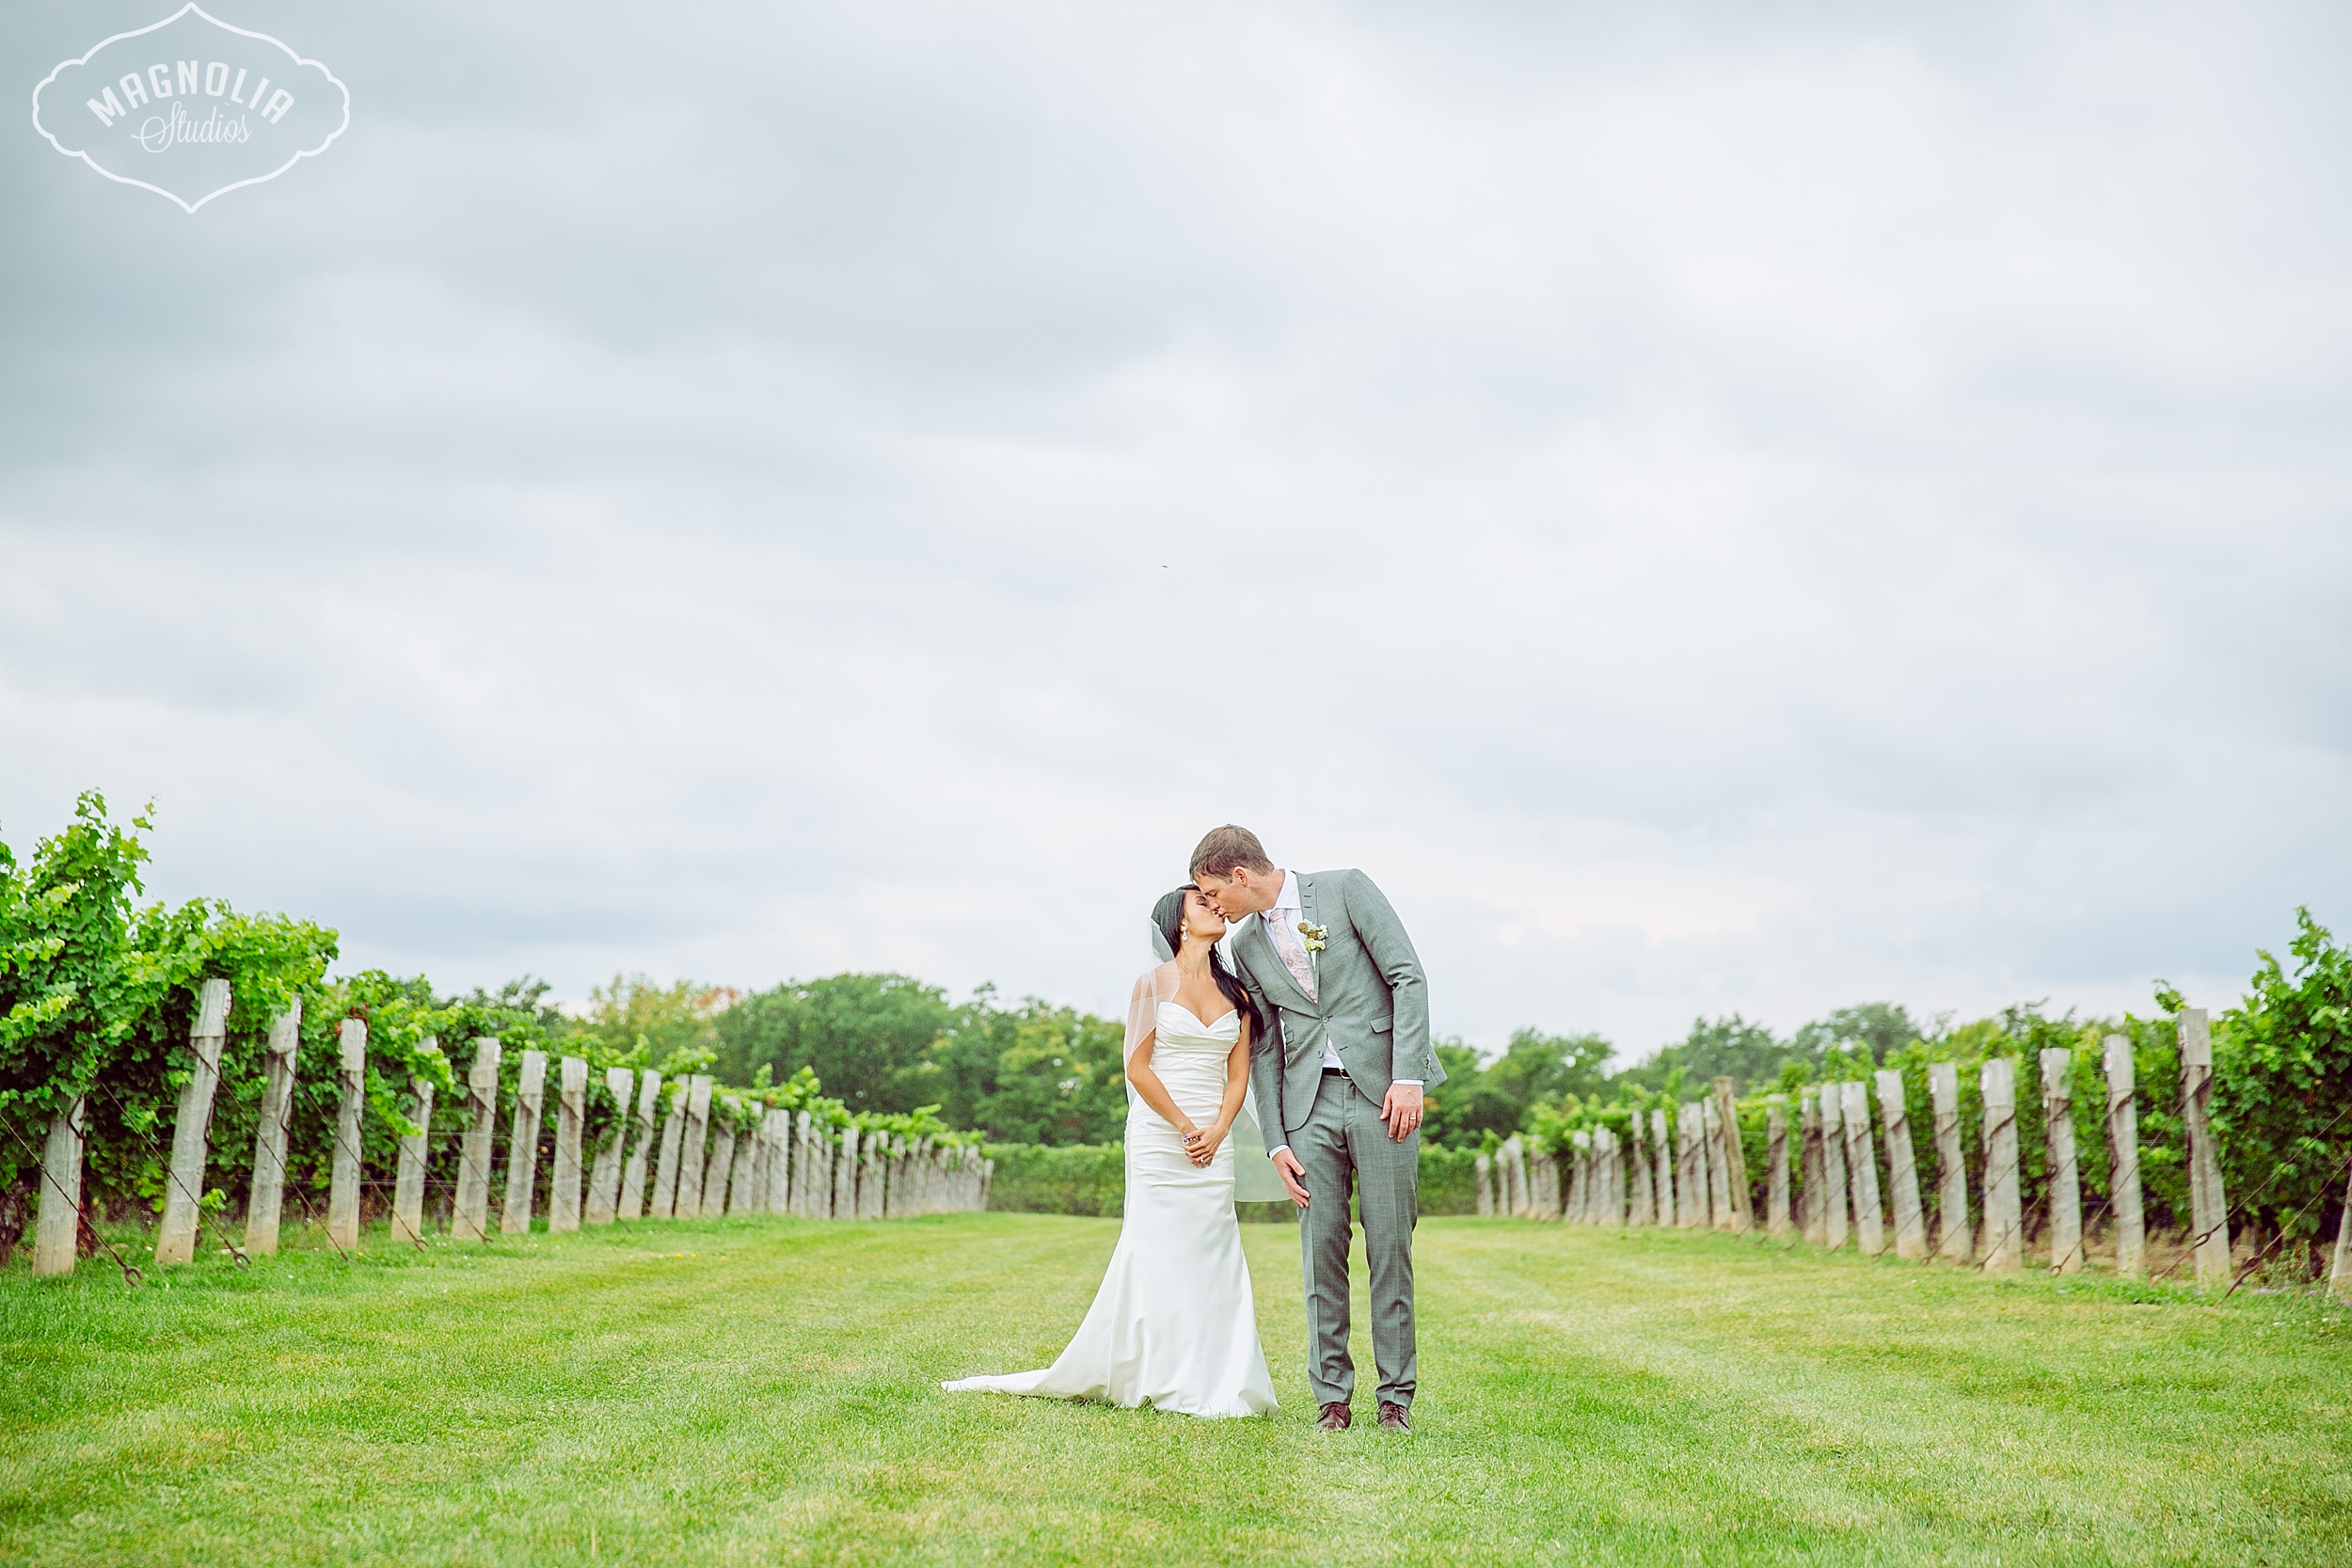 Cavesprings_Winery_Wedding_NOTL-0042